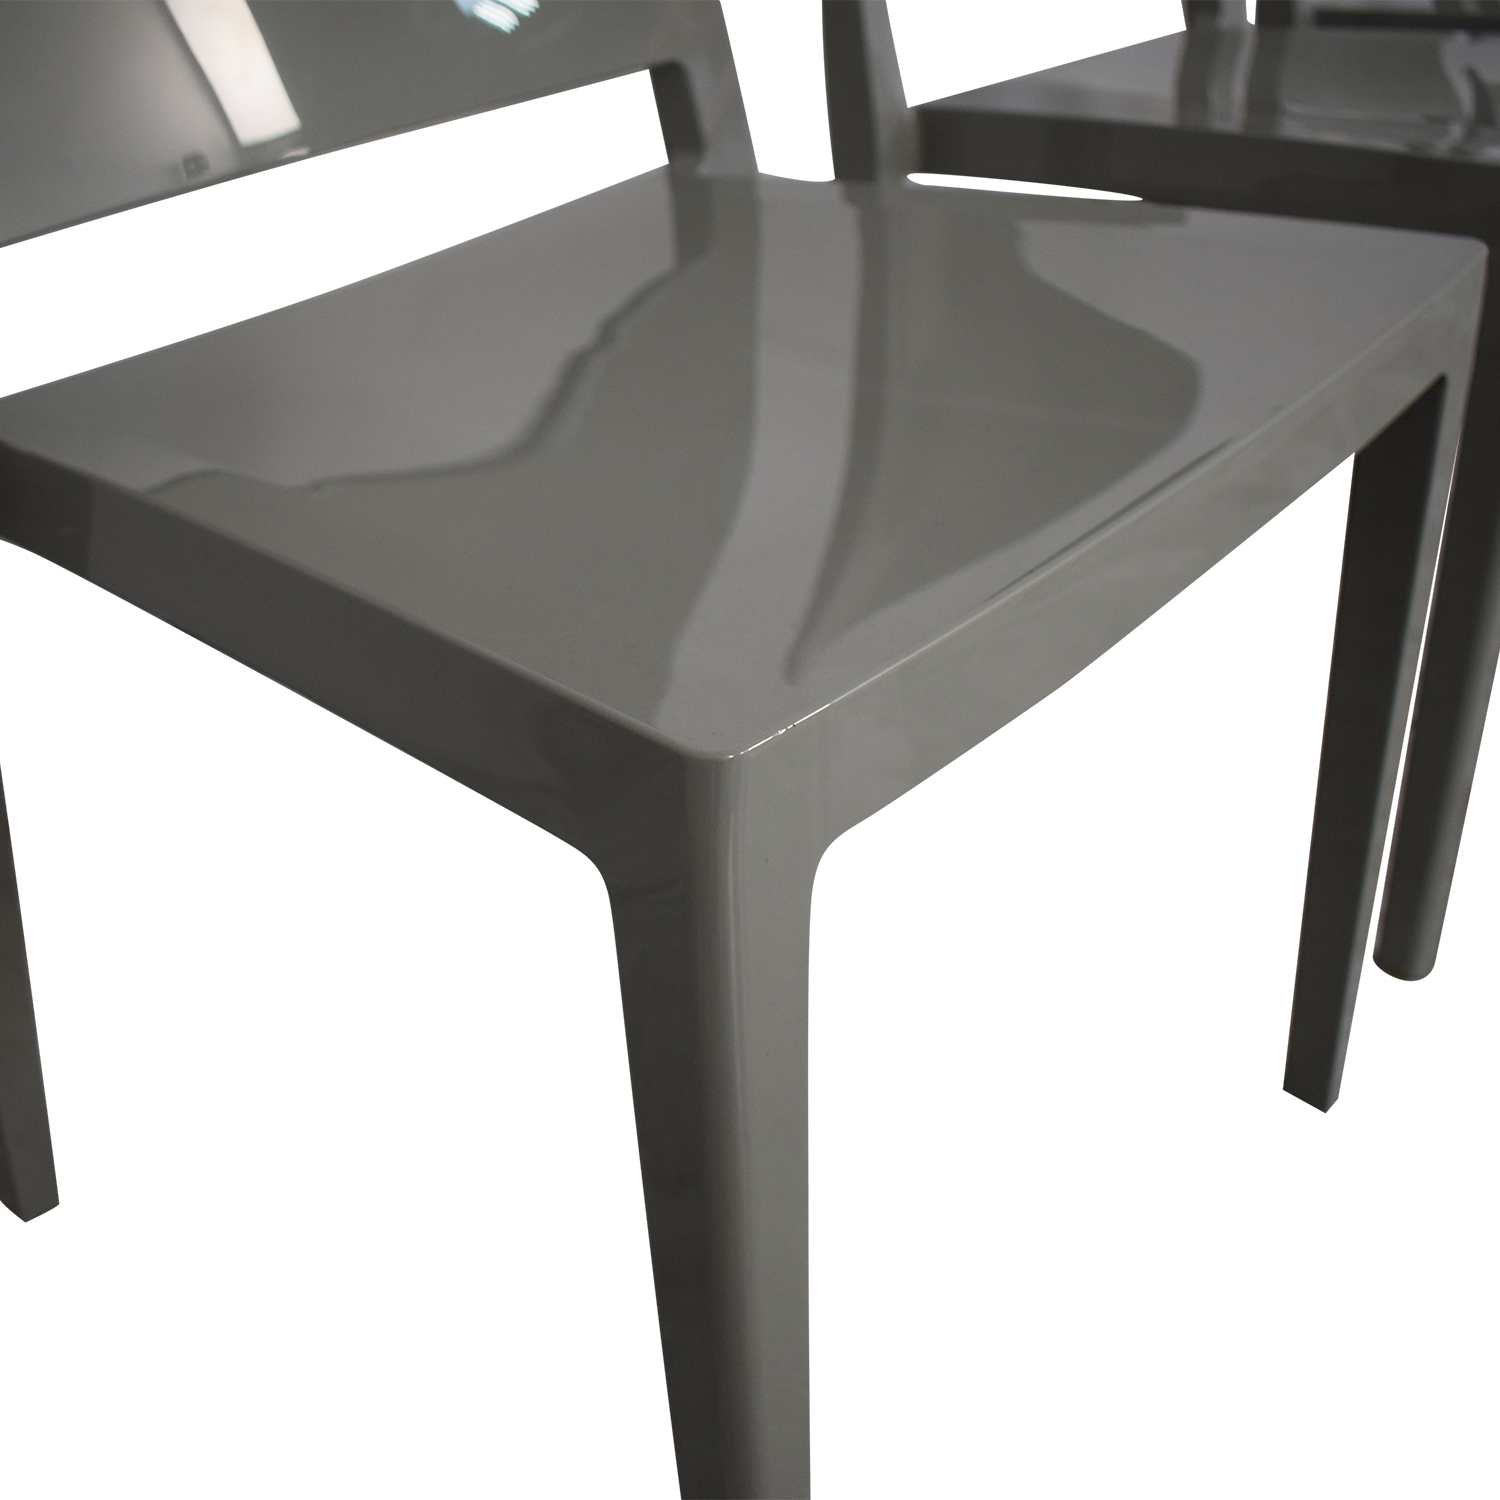 Kartell Kartell Lizz Chairs dimensions